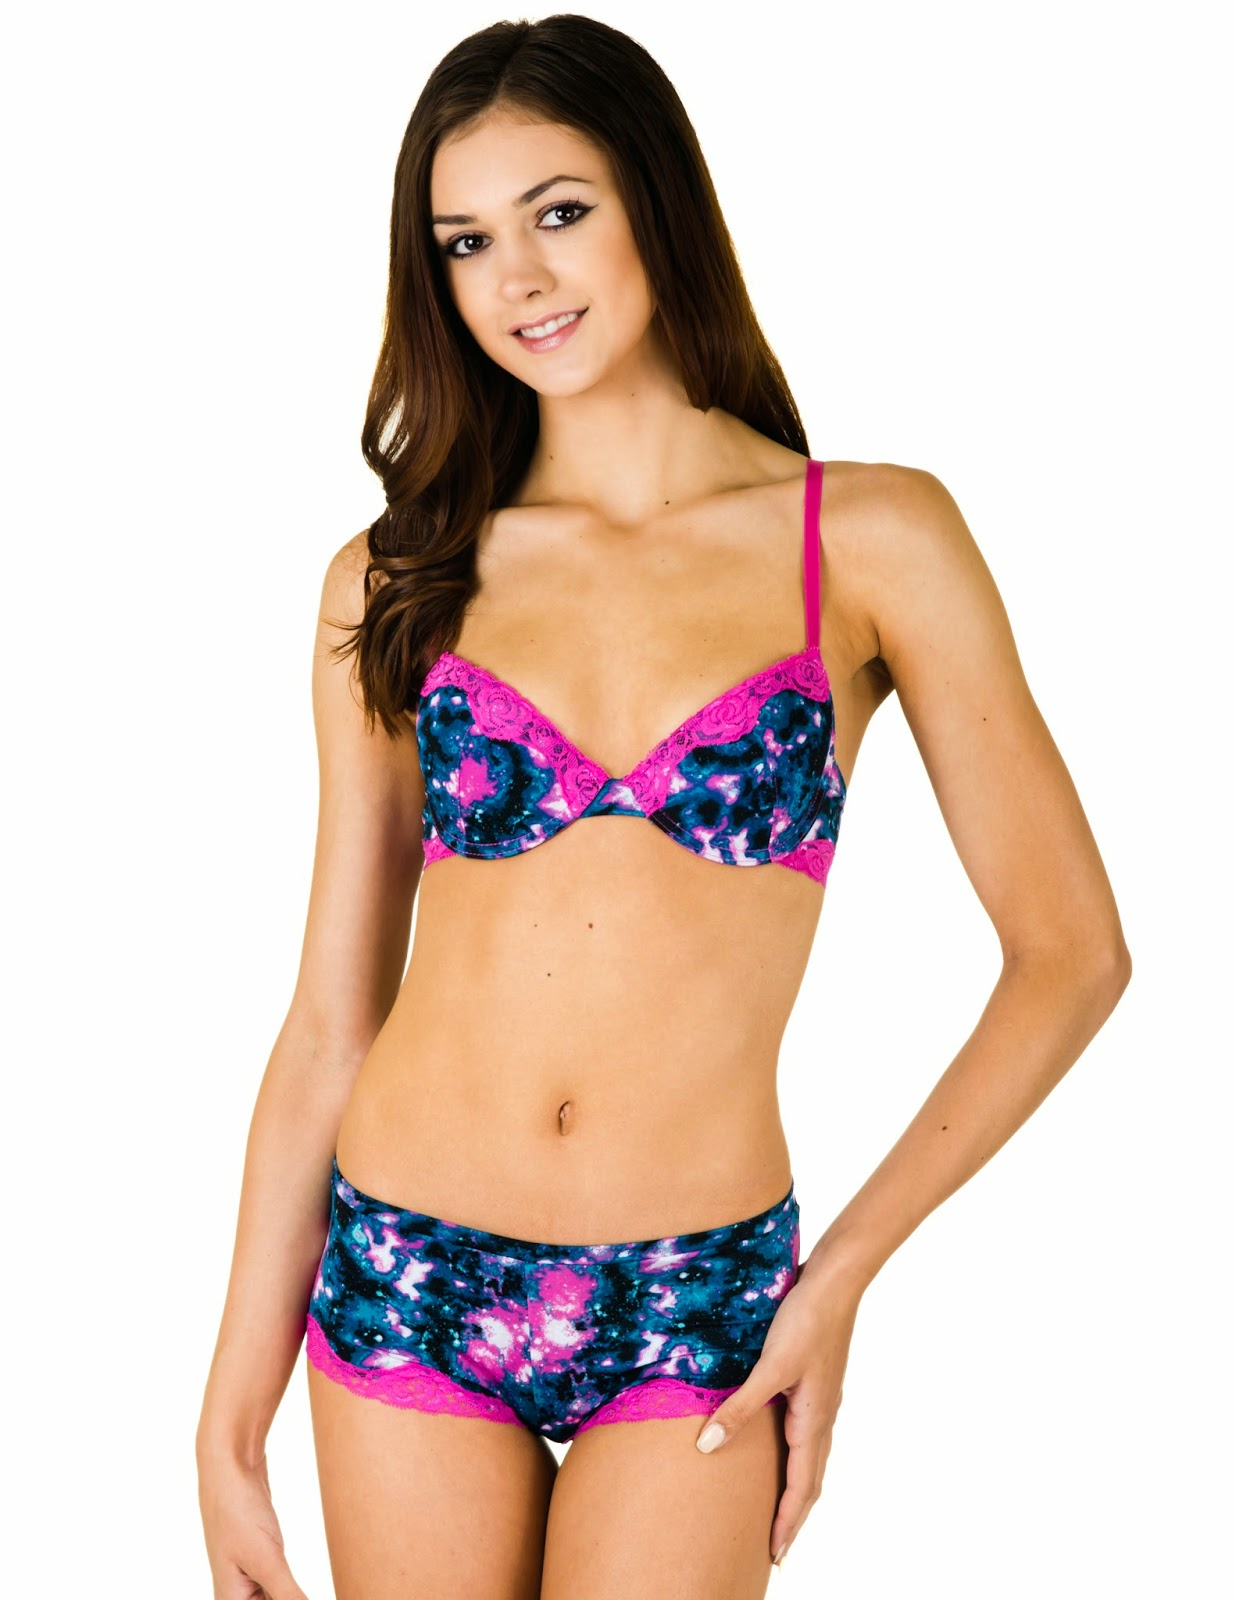 90c0878176 These matching bra and panty sets are so cute and more importantly soooo  comfortable! The bra gives you an amazing push up